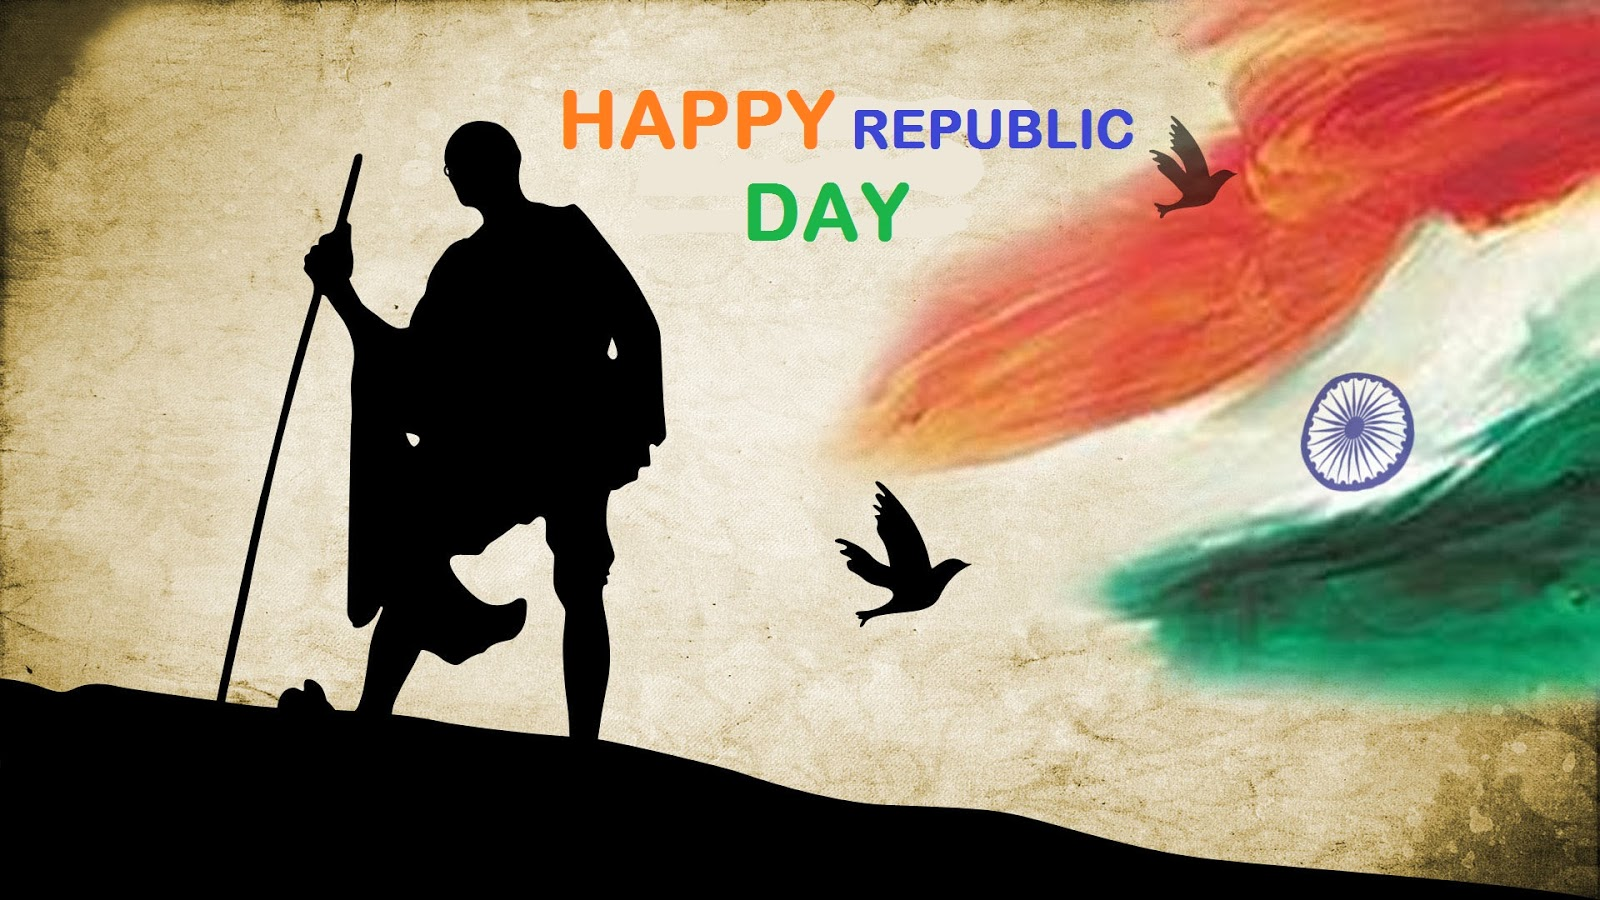 gandhiji father of nation happy republic day hd wallpapers